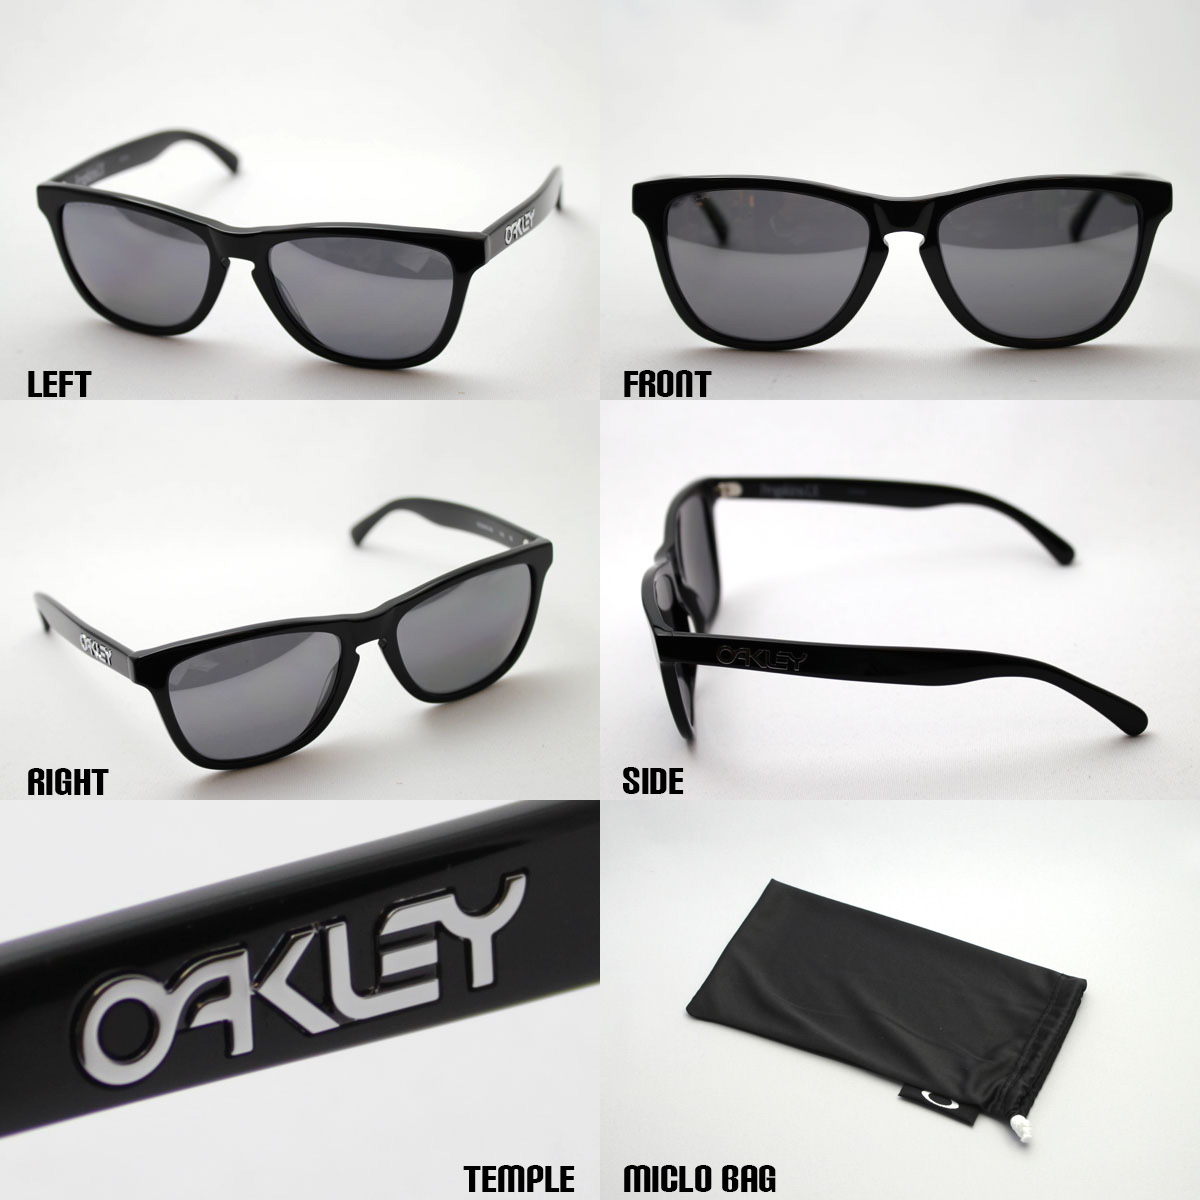 oakley glasses qatar